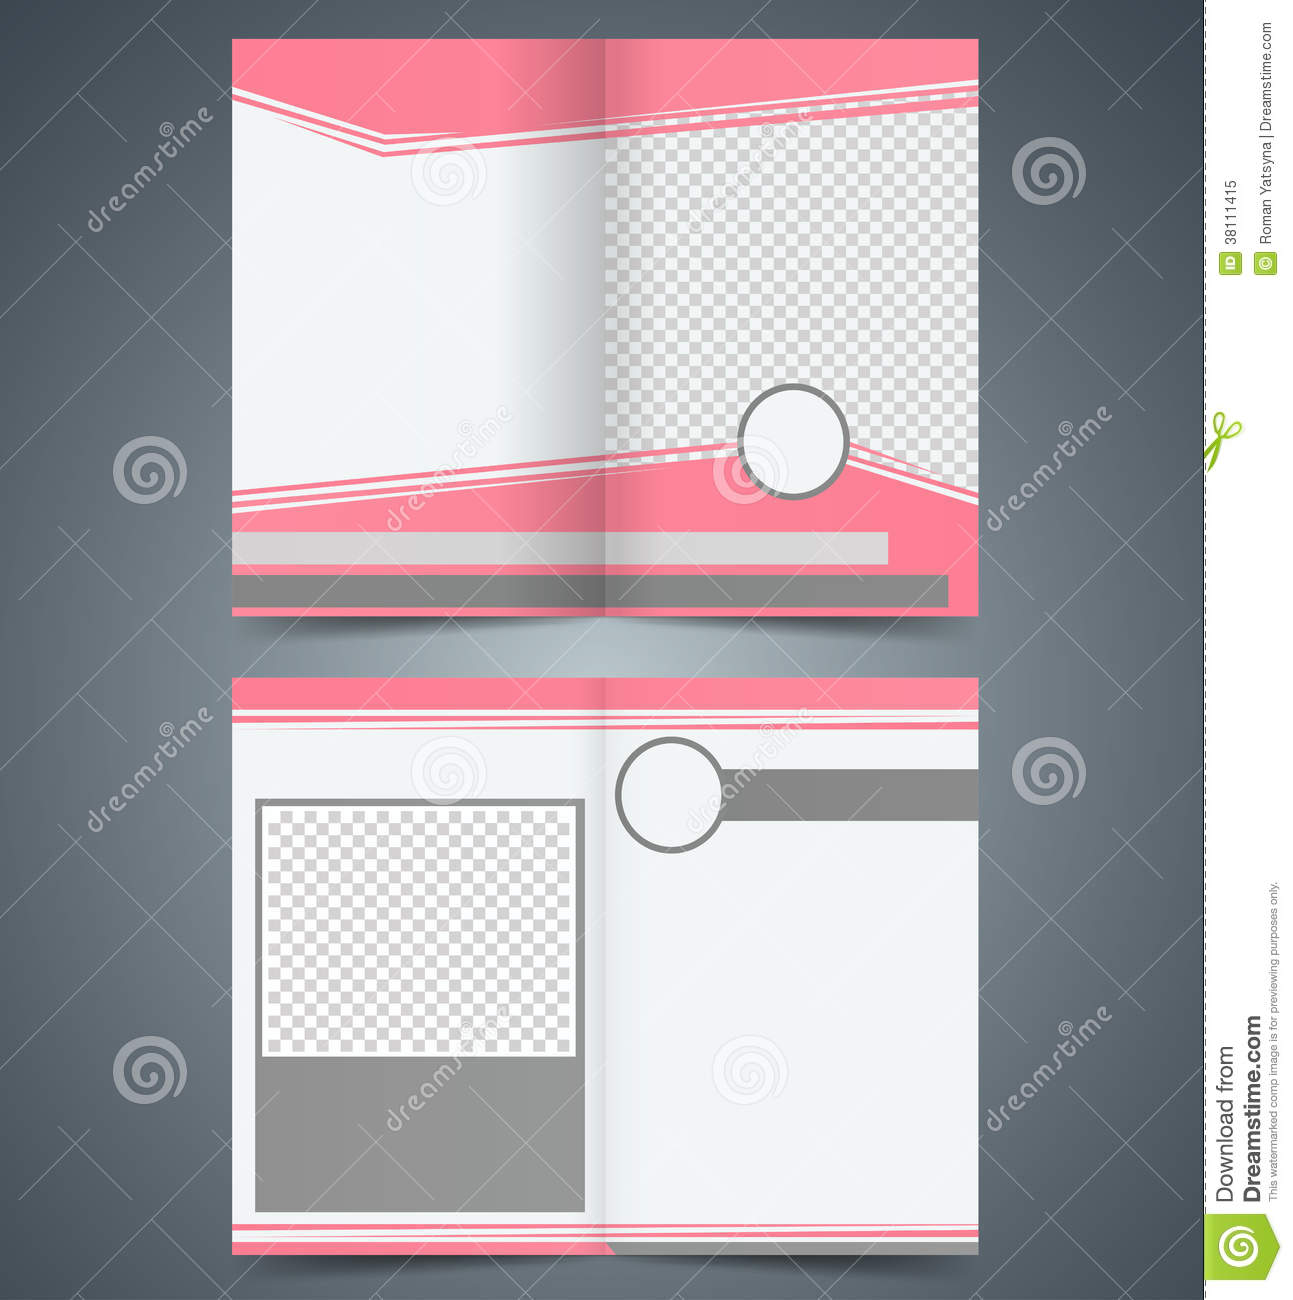 Empty Bifold Brochure Template Design With Pink Co Stock Vector